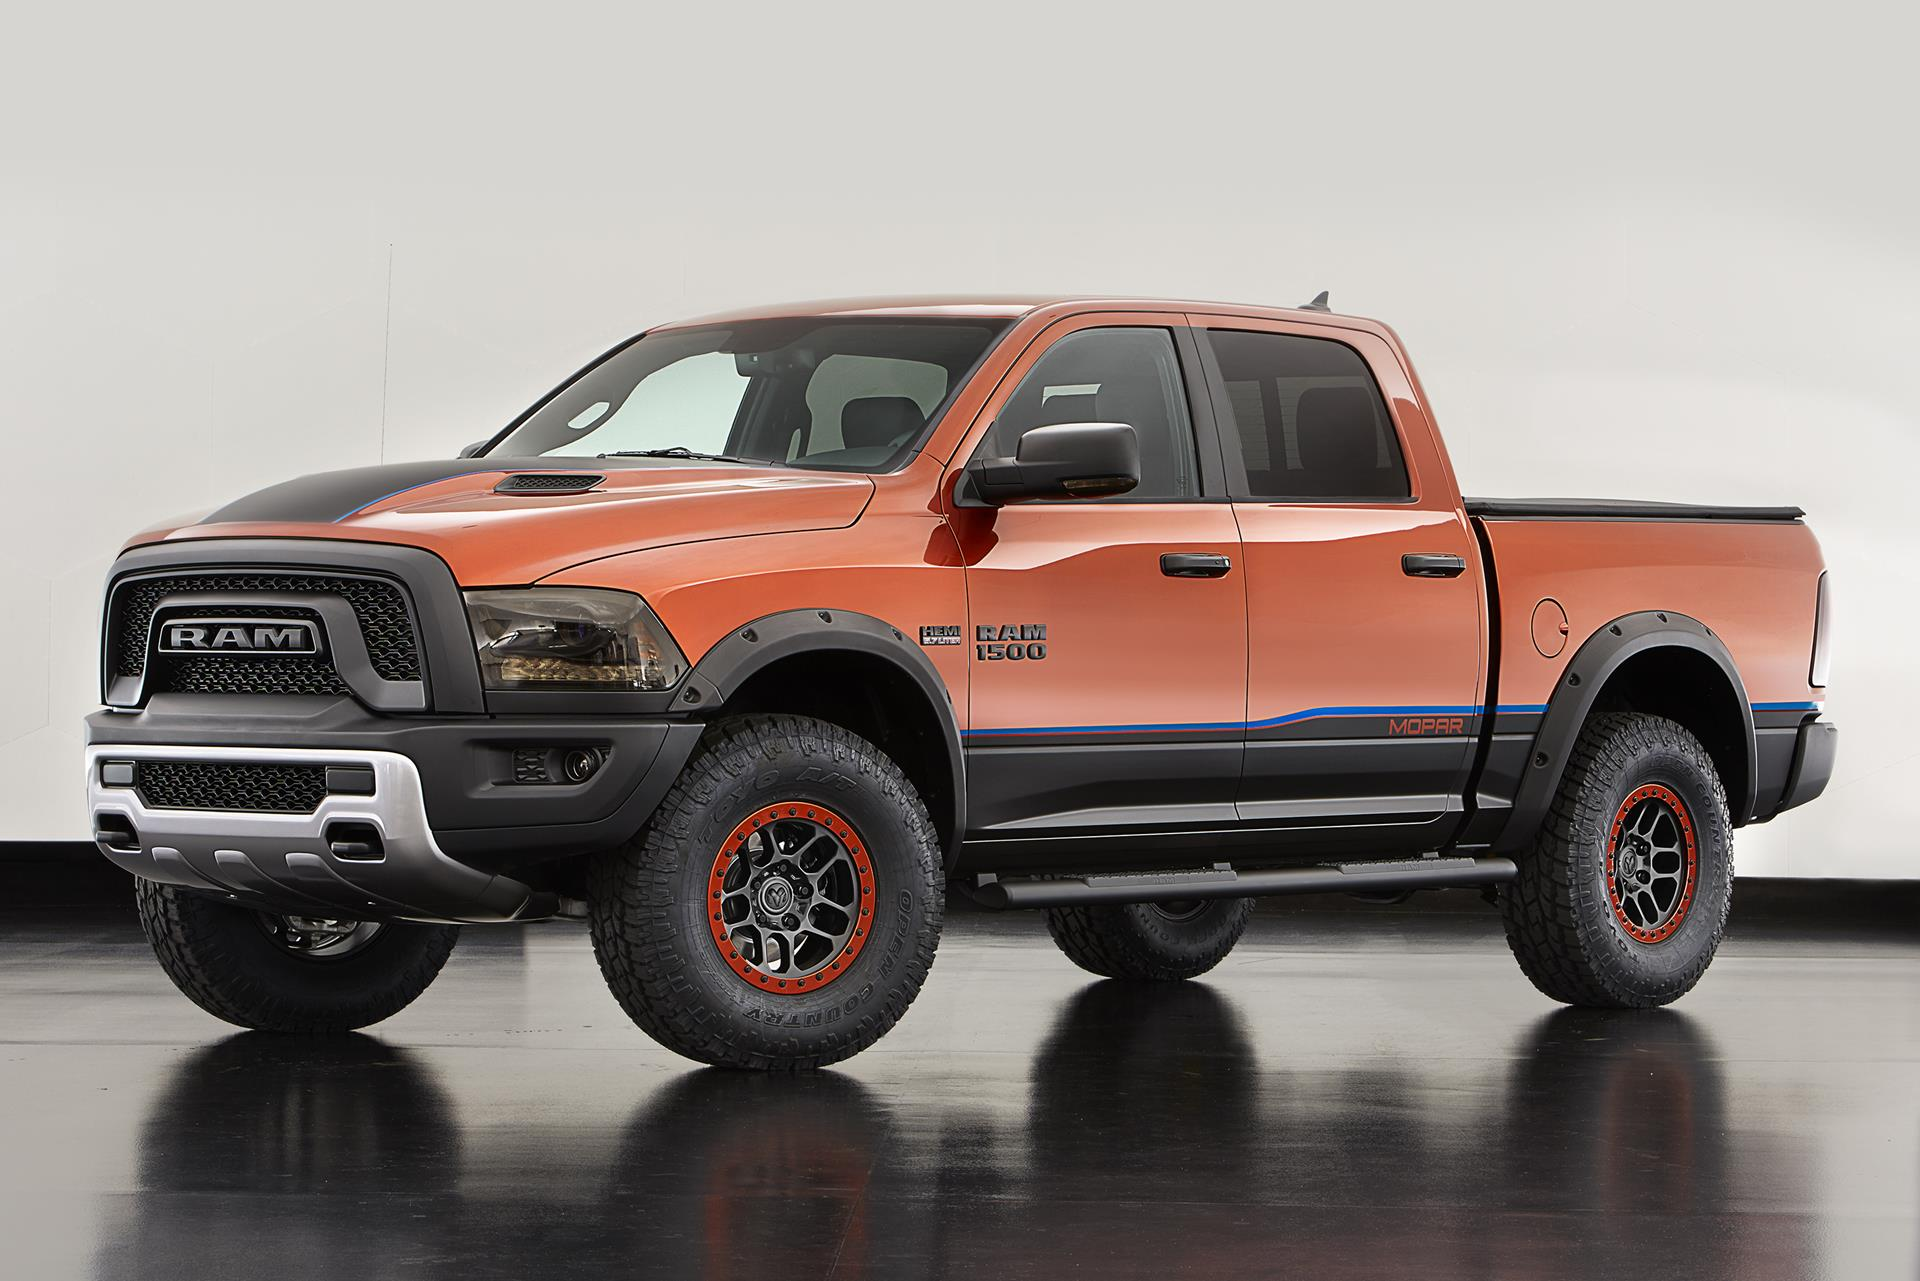 2020 Dodge Ram 1500 >> 2015 Ram Rebel X News and Information | conceptcarz.com